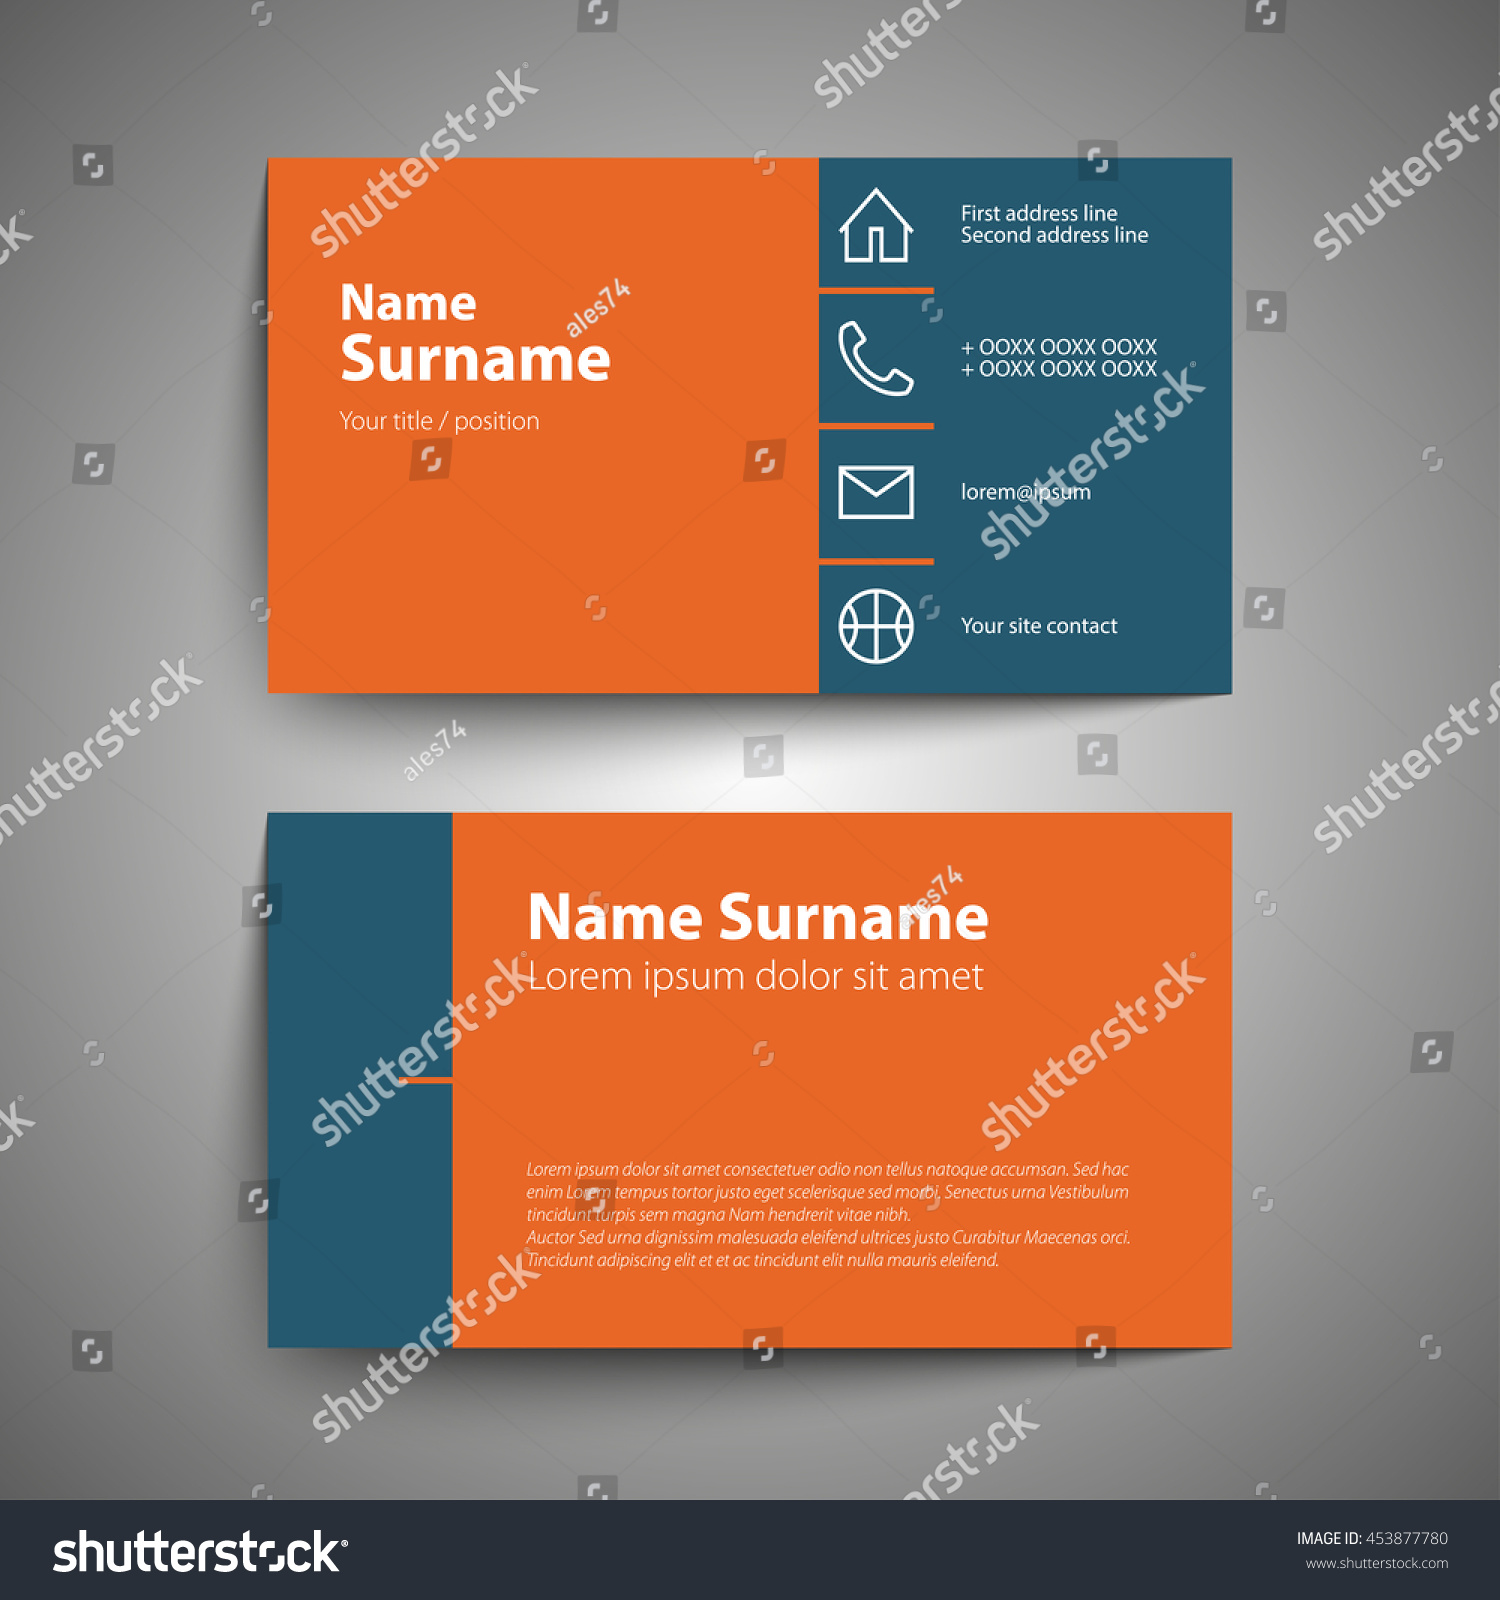 Beautiful Gallery Of Simple Business Cards - Business Cards and ...